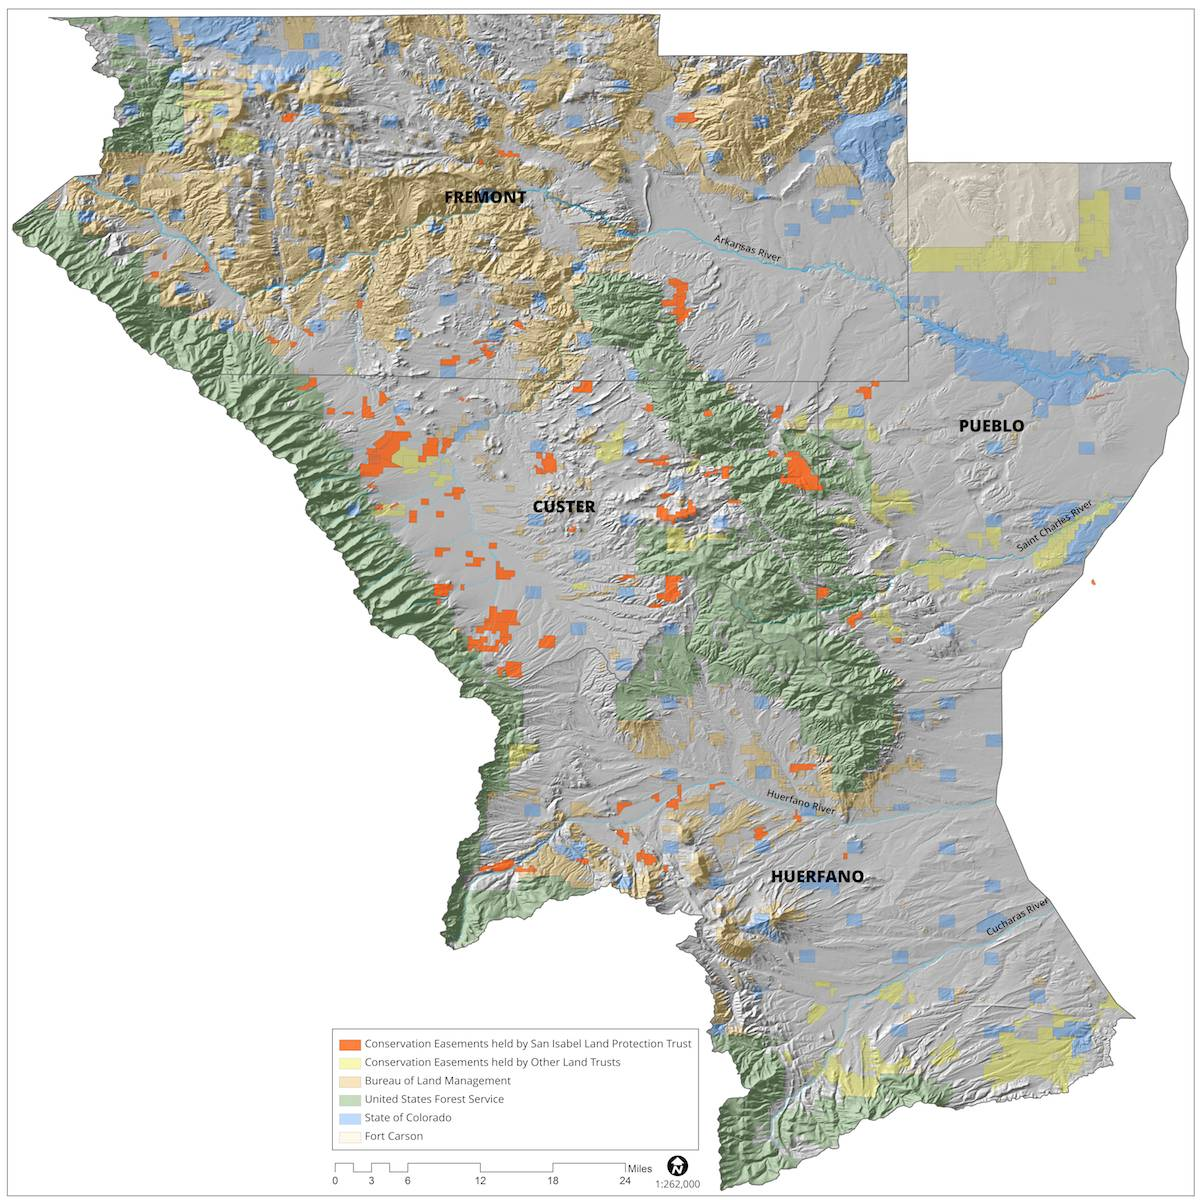 Map of conservation easements for Custer, Fremont, Pueblo and Huerfano Counties.